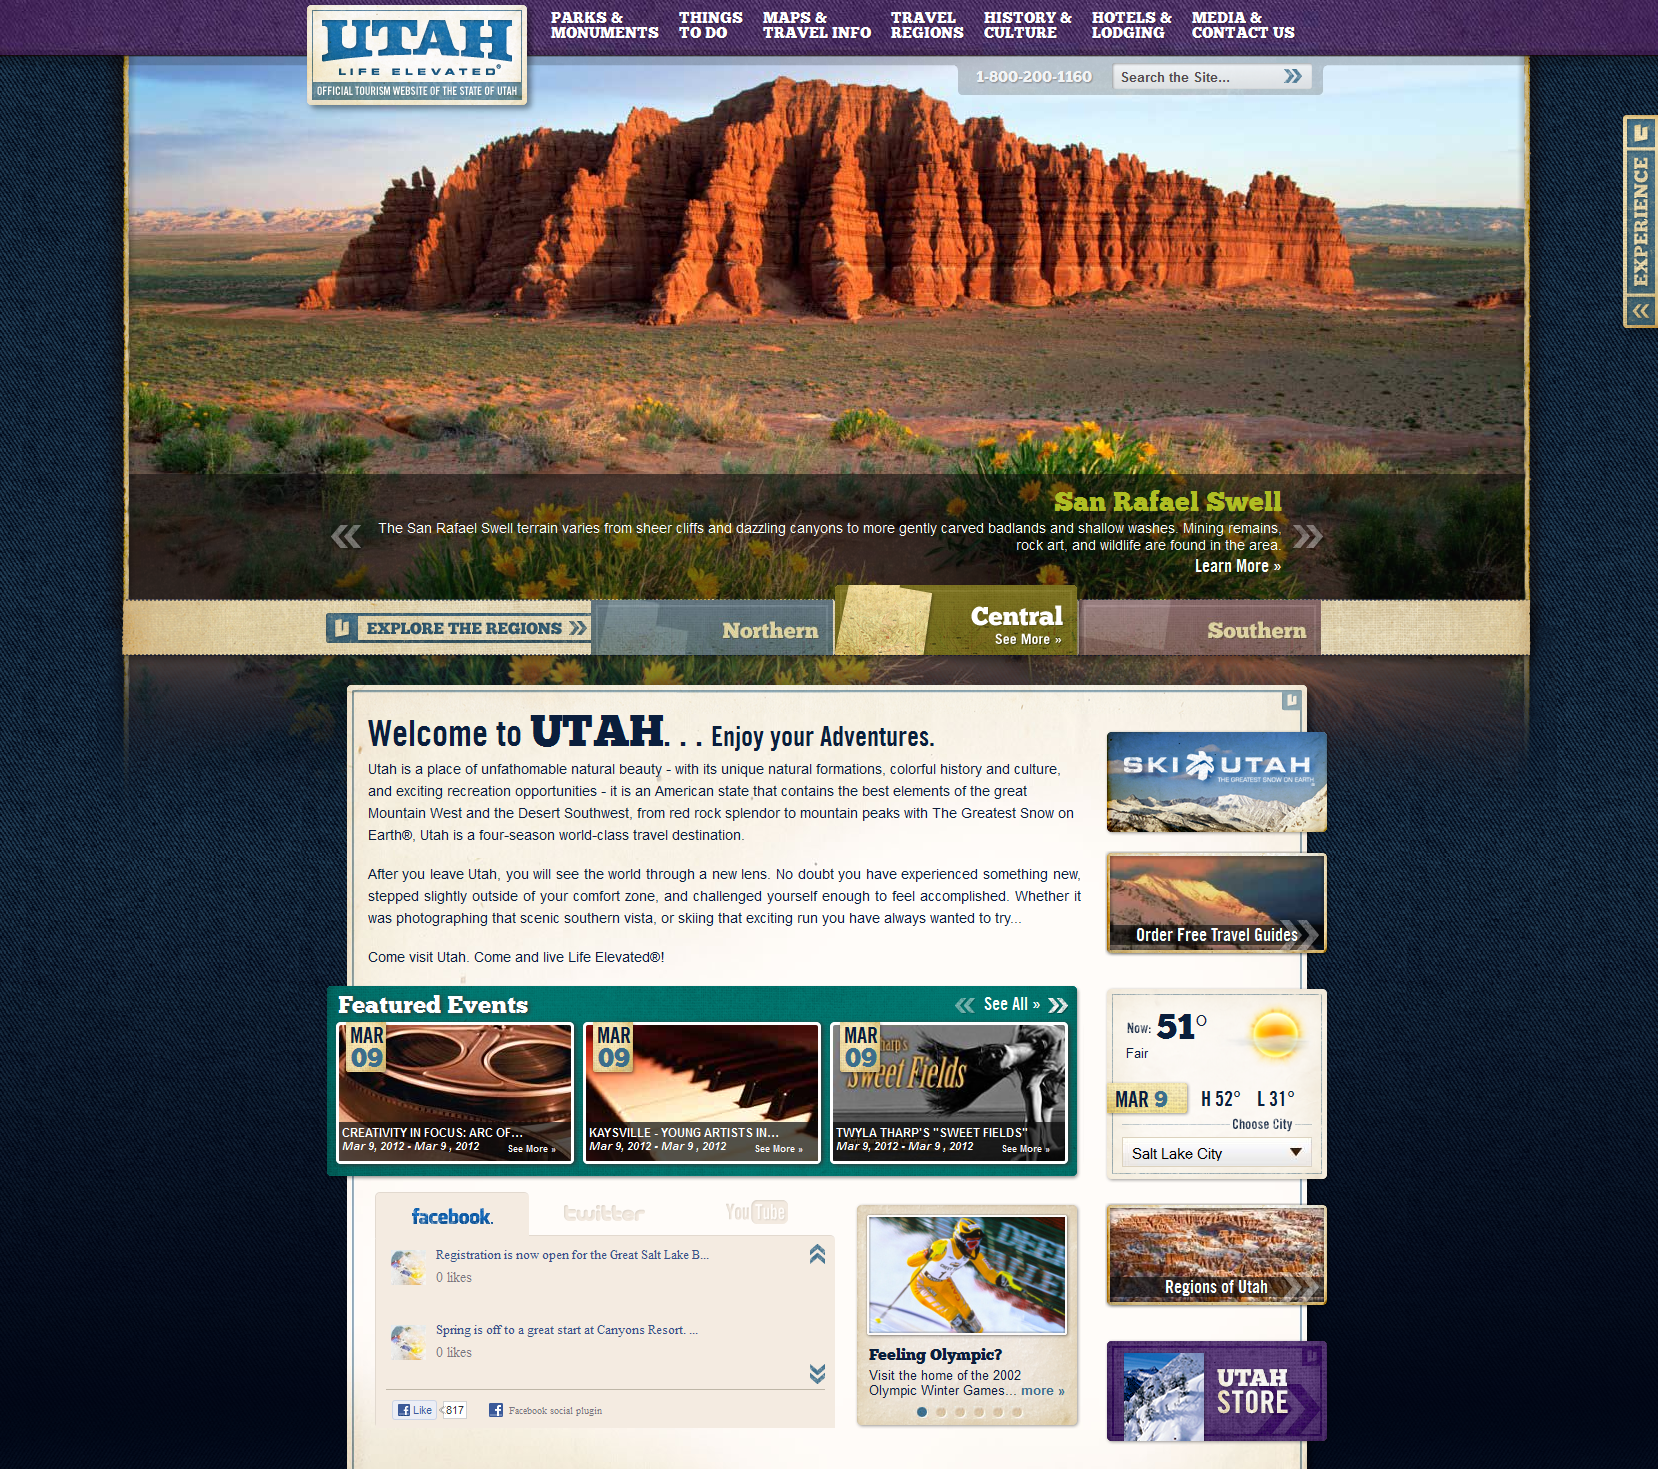 Utah Tourism Website - March 2012